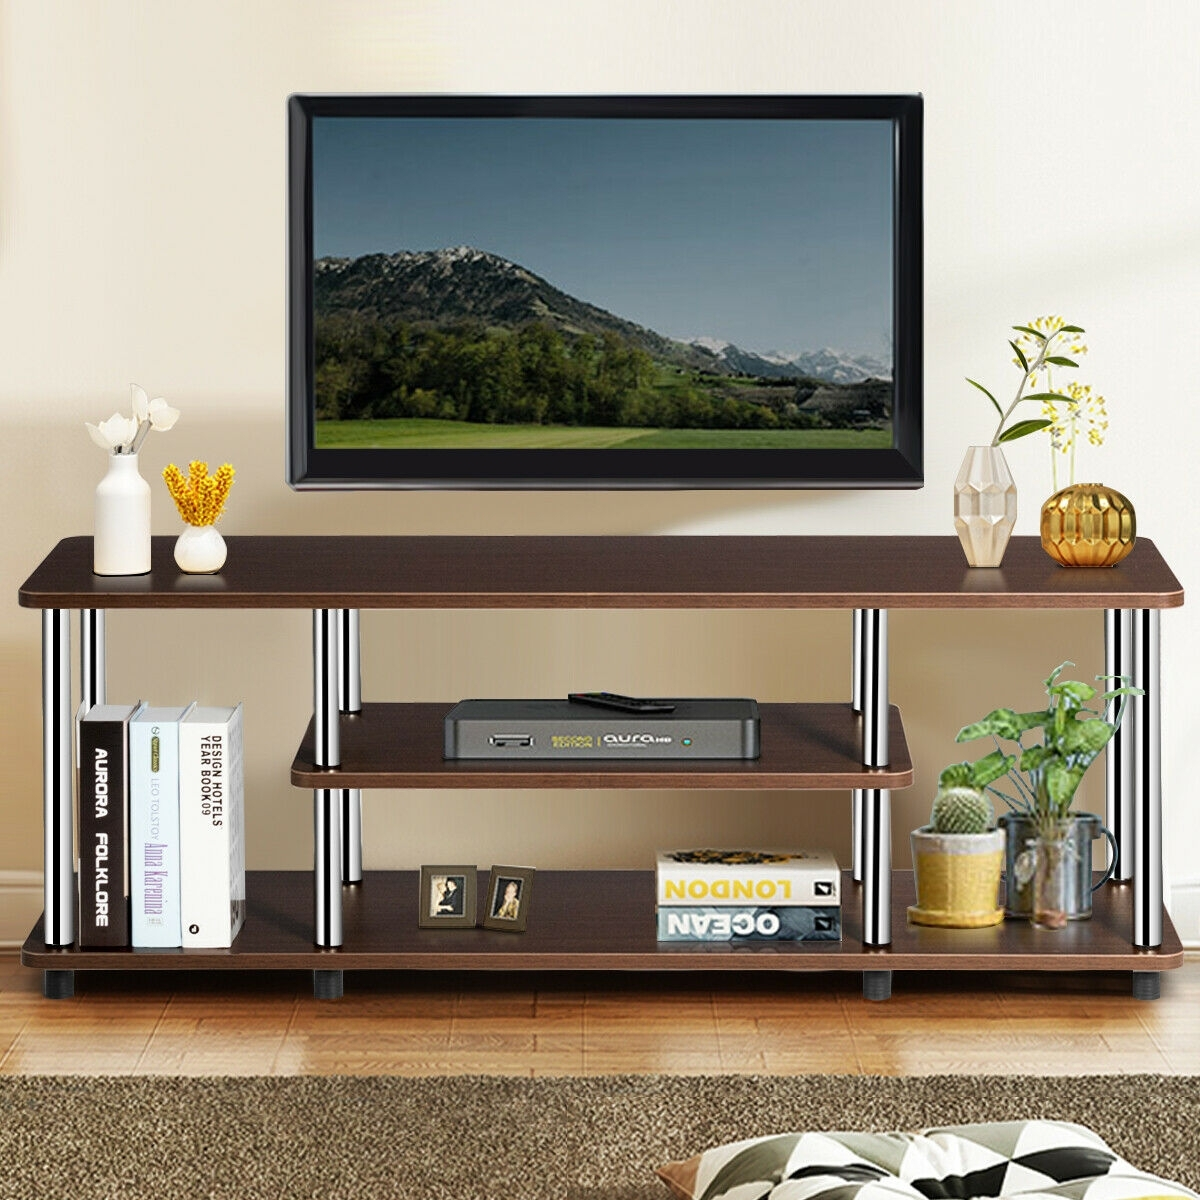 3-Tier 110lbs Stainless Steel Listed Universal TV Stand